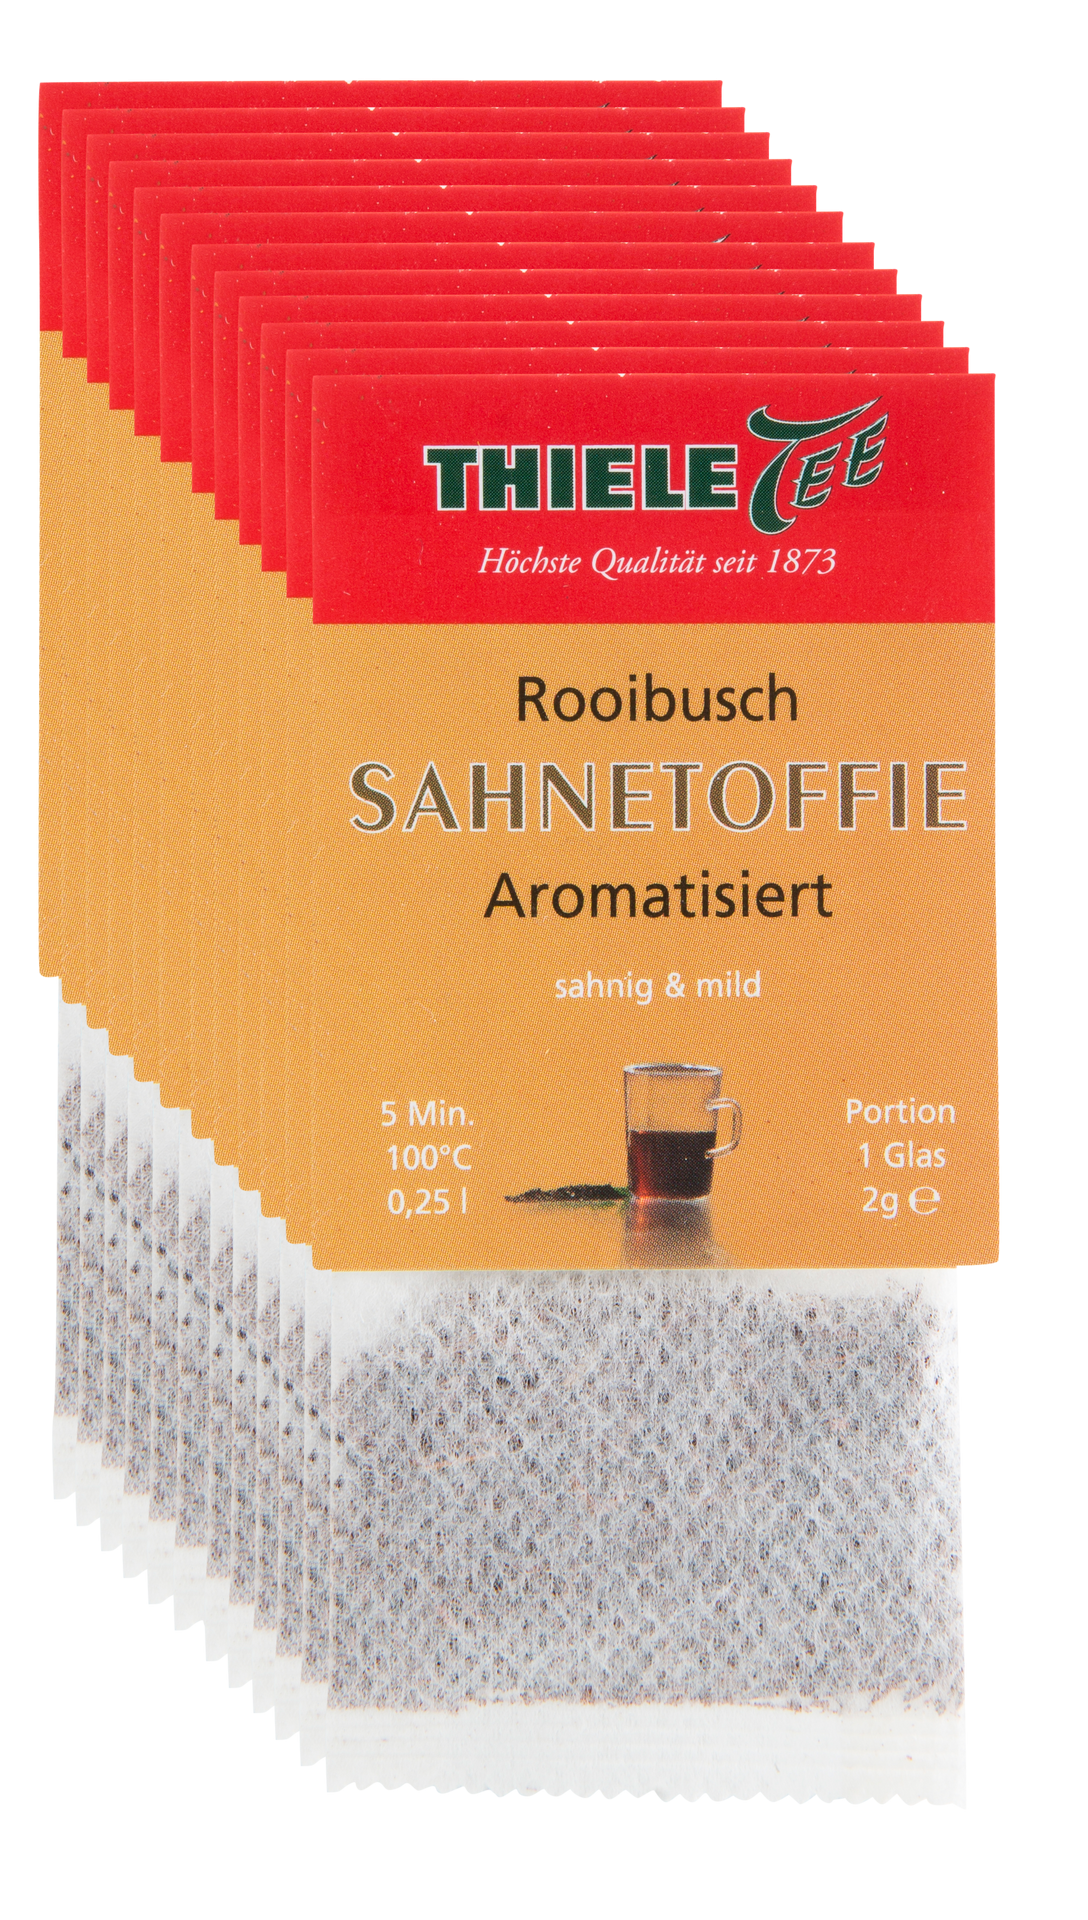 Edition Rooibos Sahne-Toffie 20 x 2g